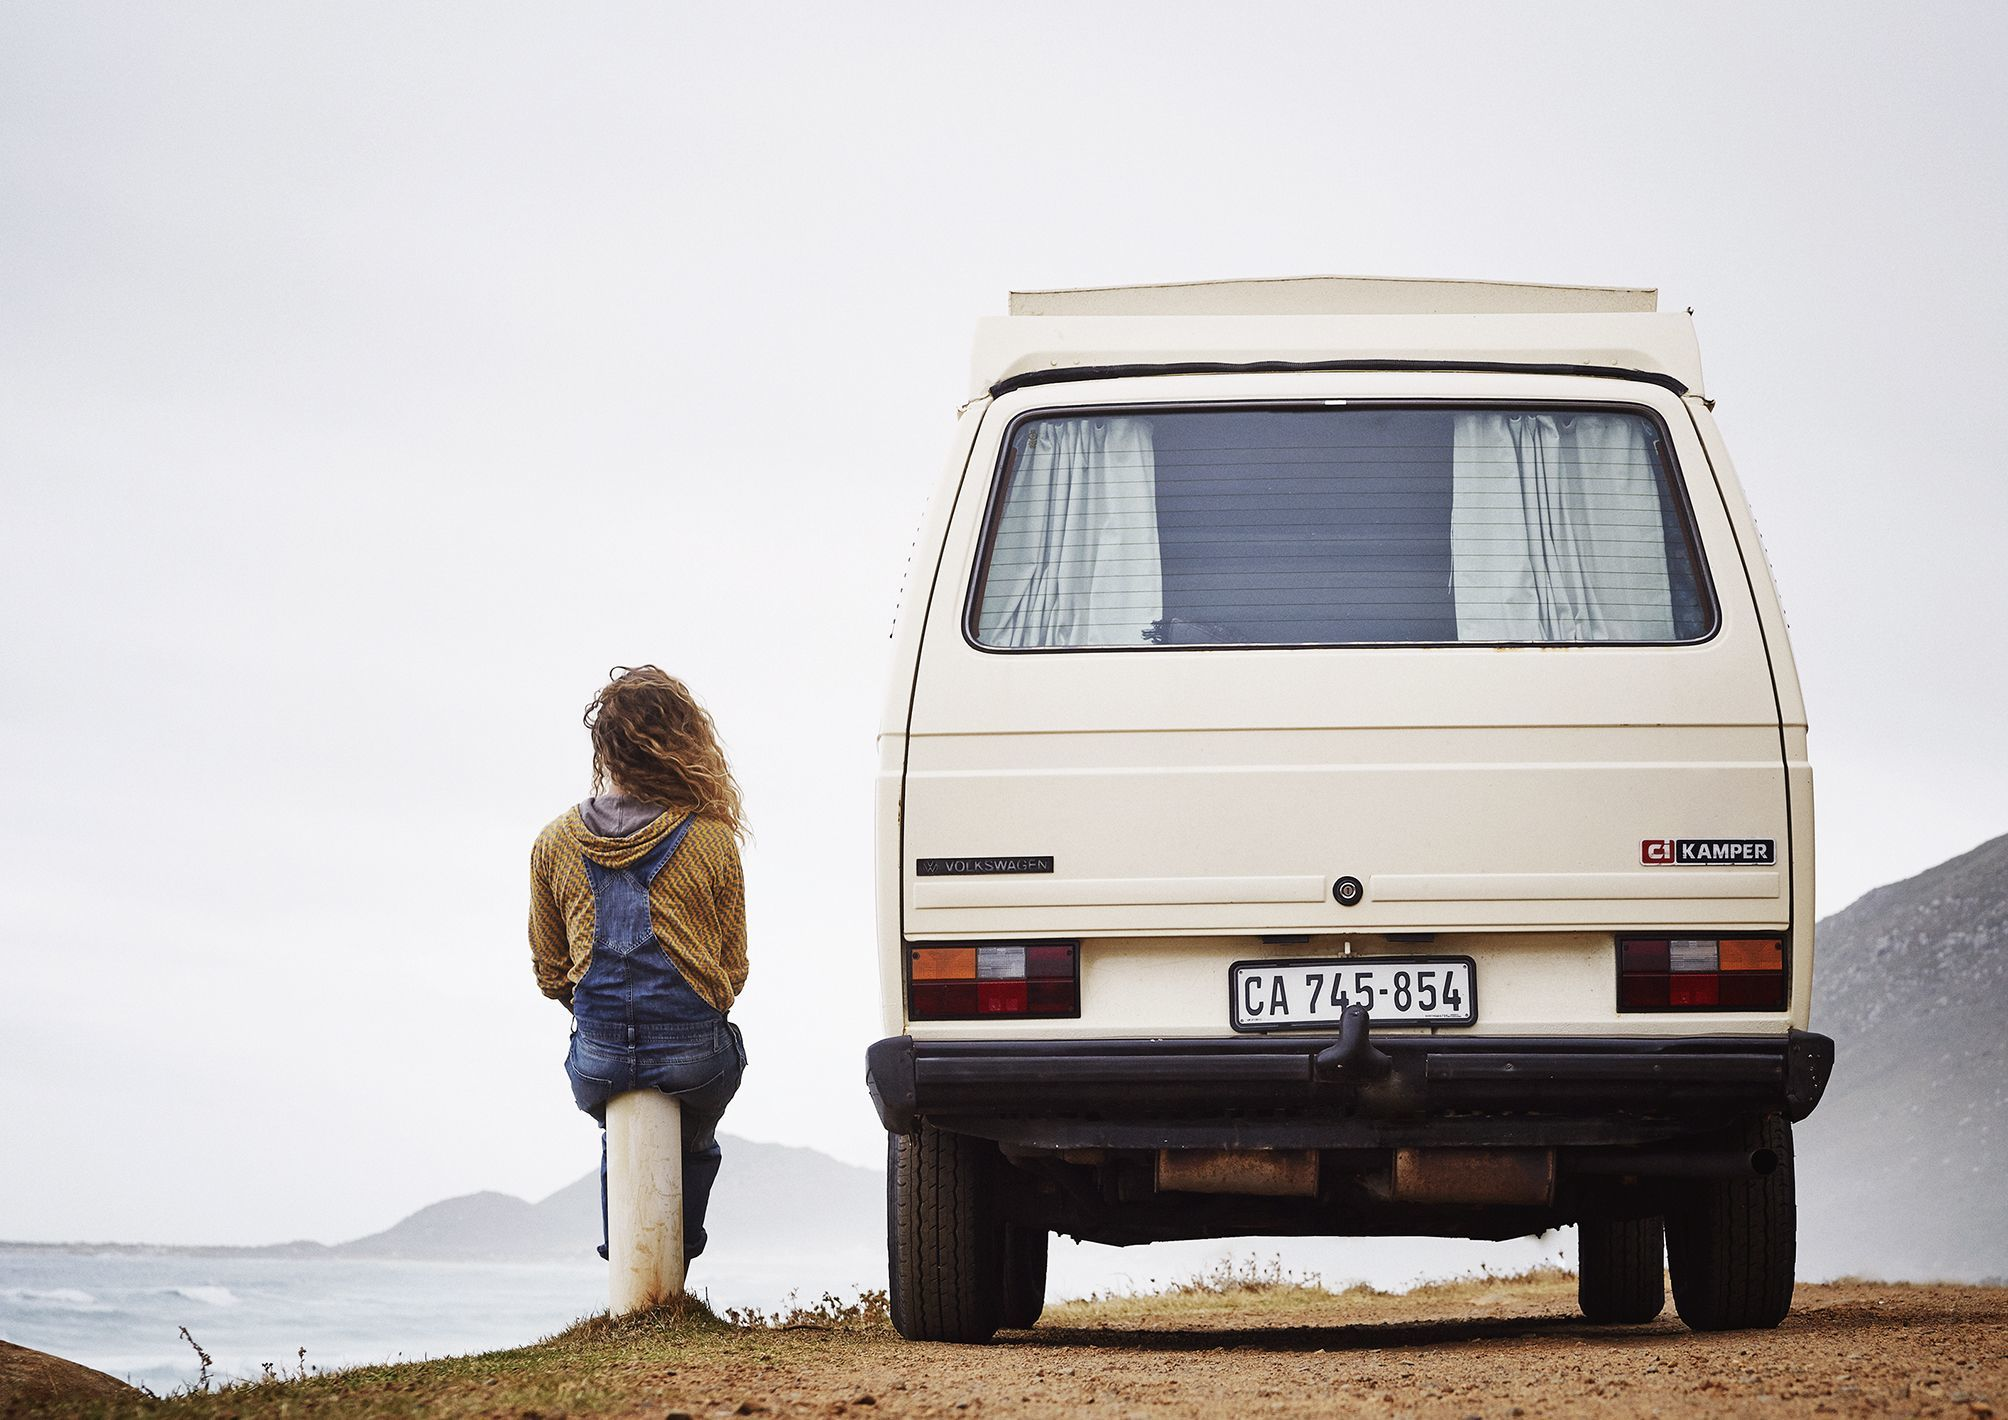 A girl sitting next to her van both enjoying the view over the ocean at misty cliffs in cape town.